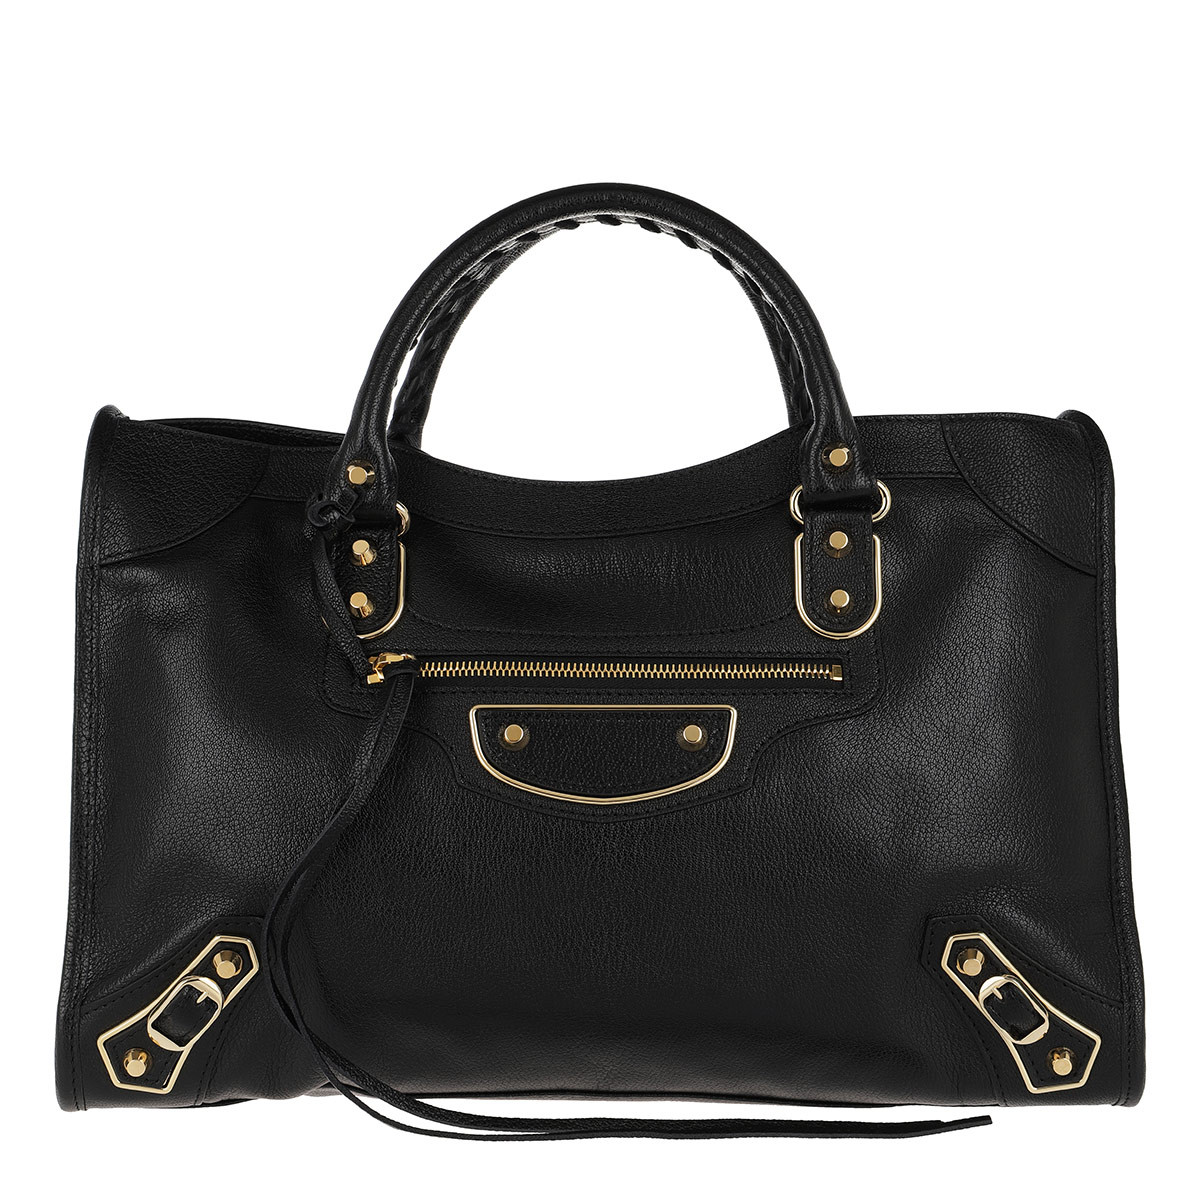 Balenciaga Tote - Metallic Edge Classic City Bag Leather Black - in schwarz - für Damen